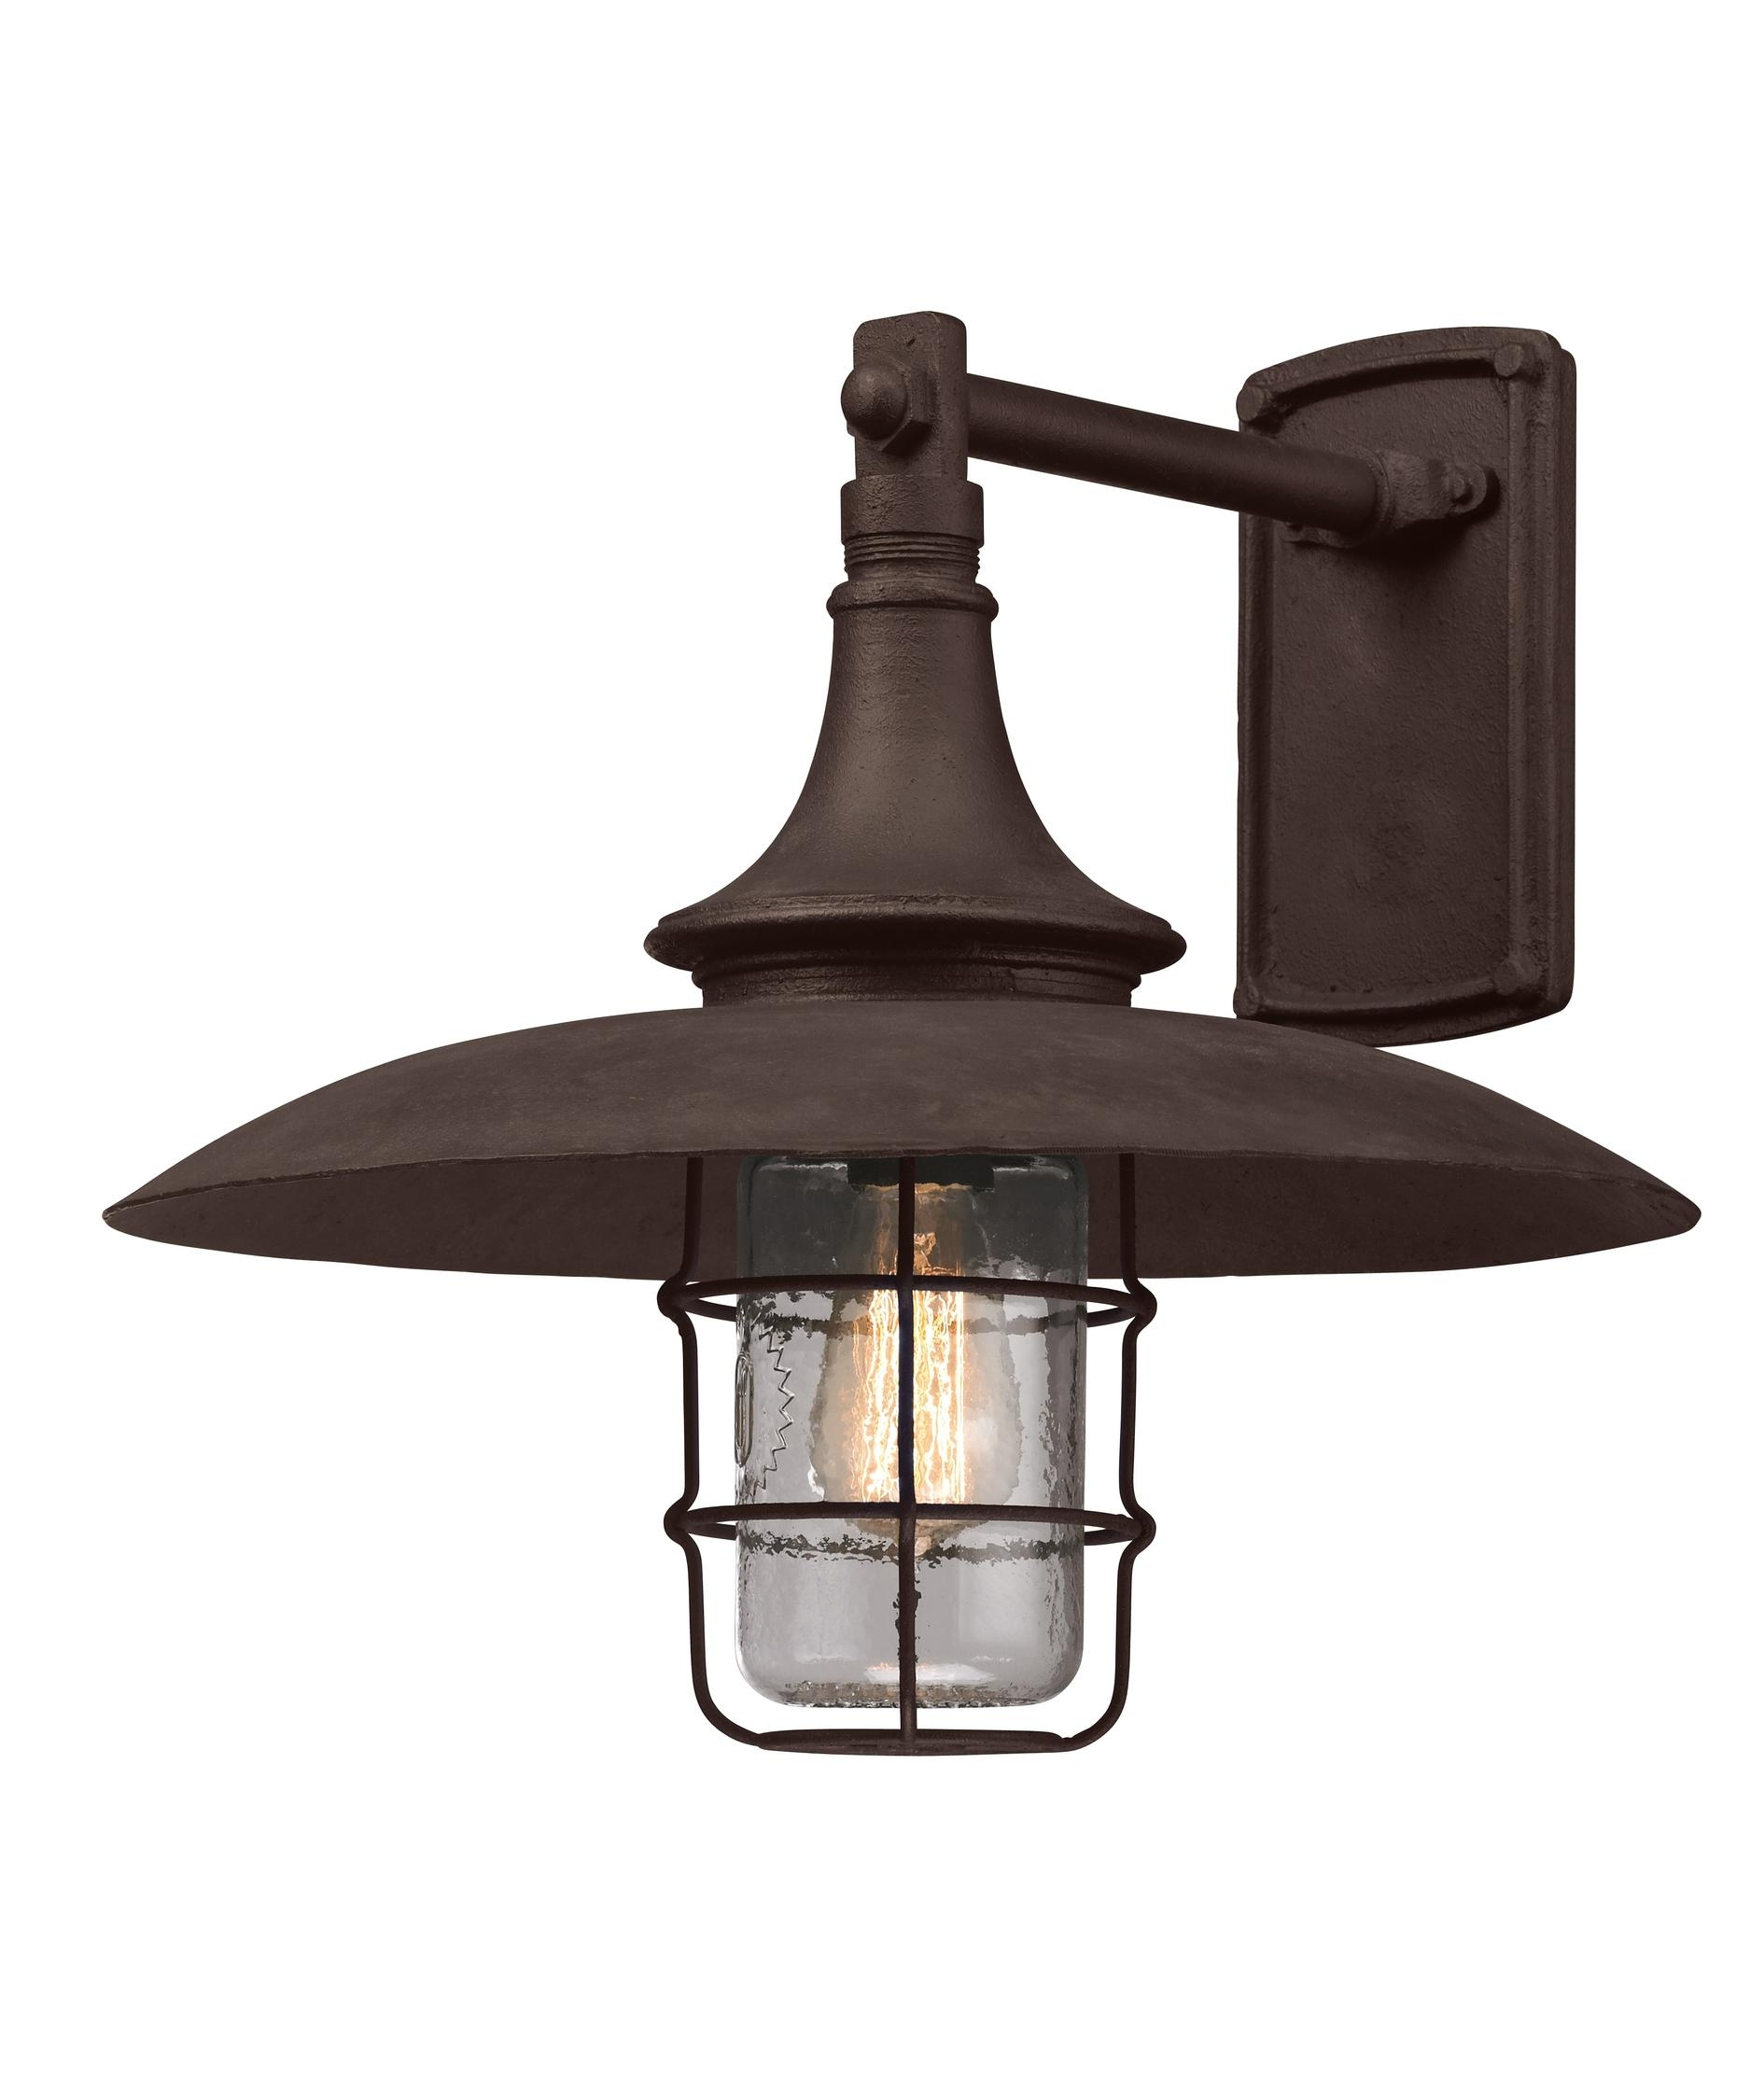 Inspiration about Troy Lighting B3222 Allegany 16 Inch Wide 1 Light Outdoor Wall Light For Retro Outdoor Wall Lighting (#3 of 15)